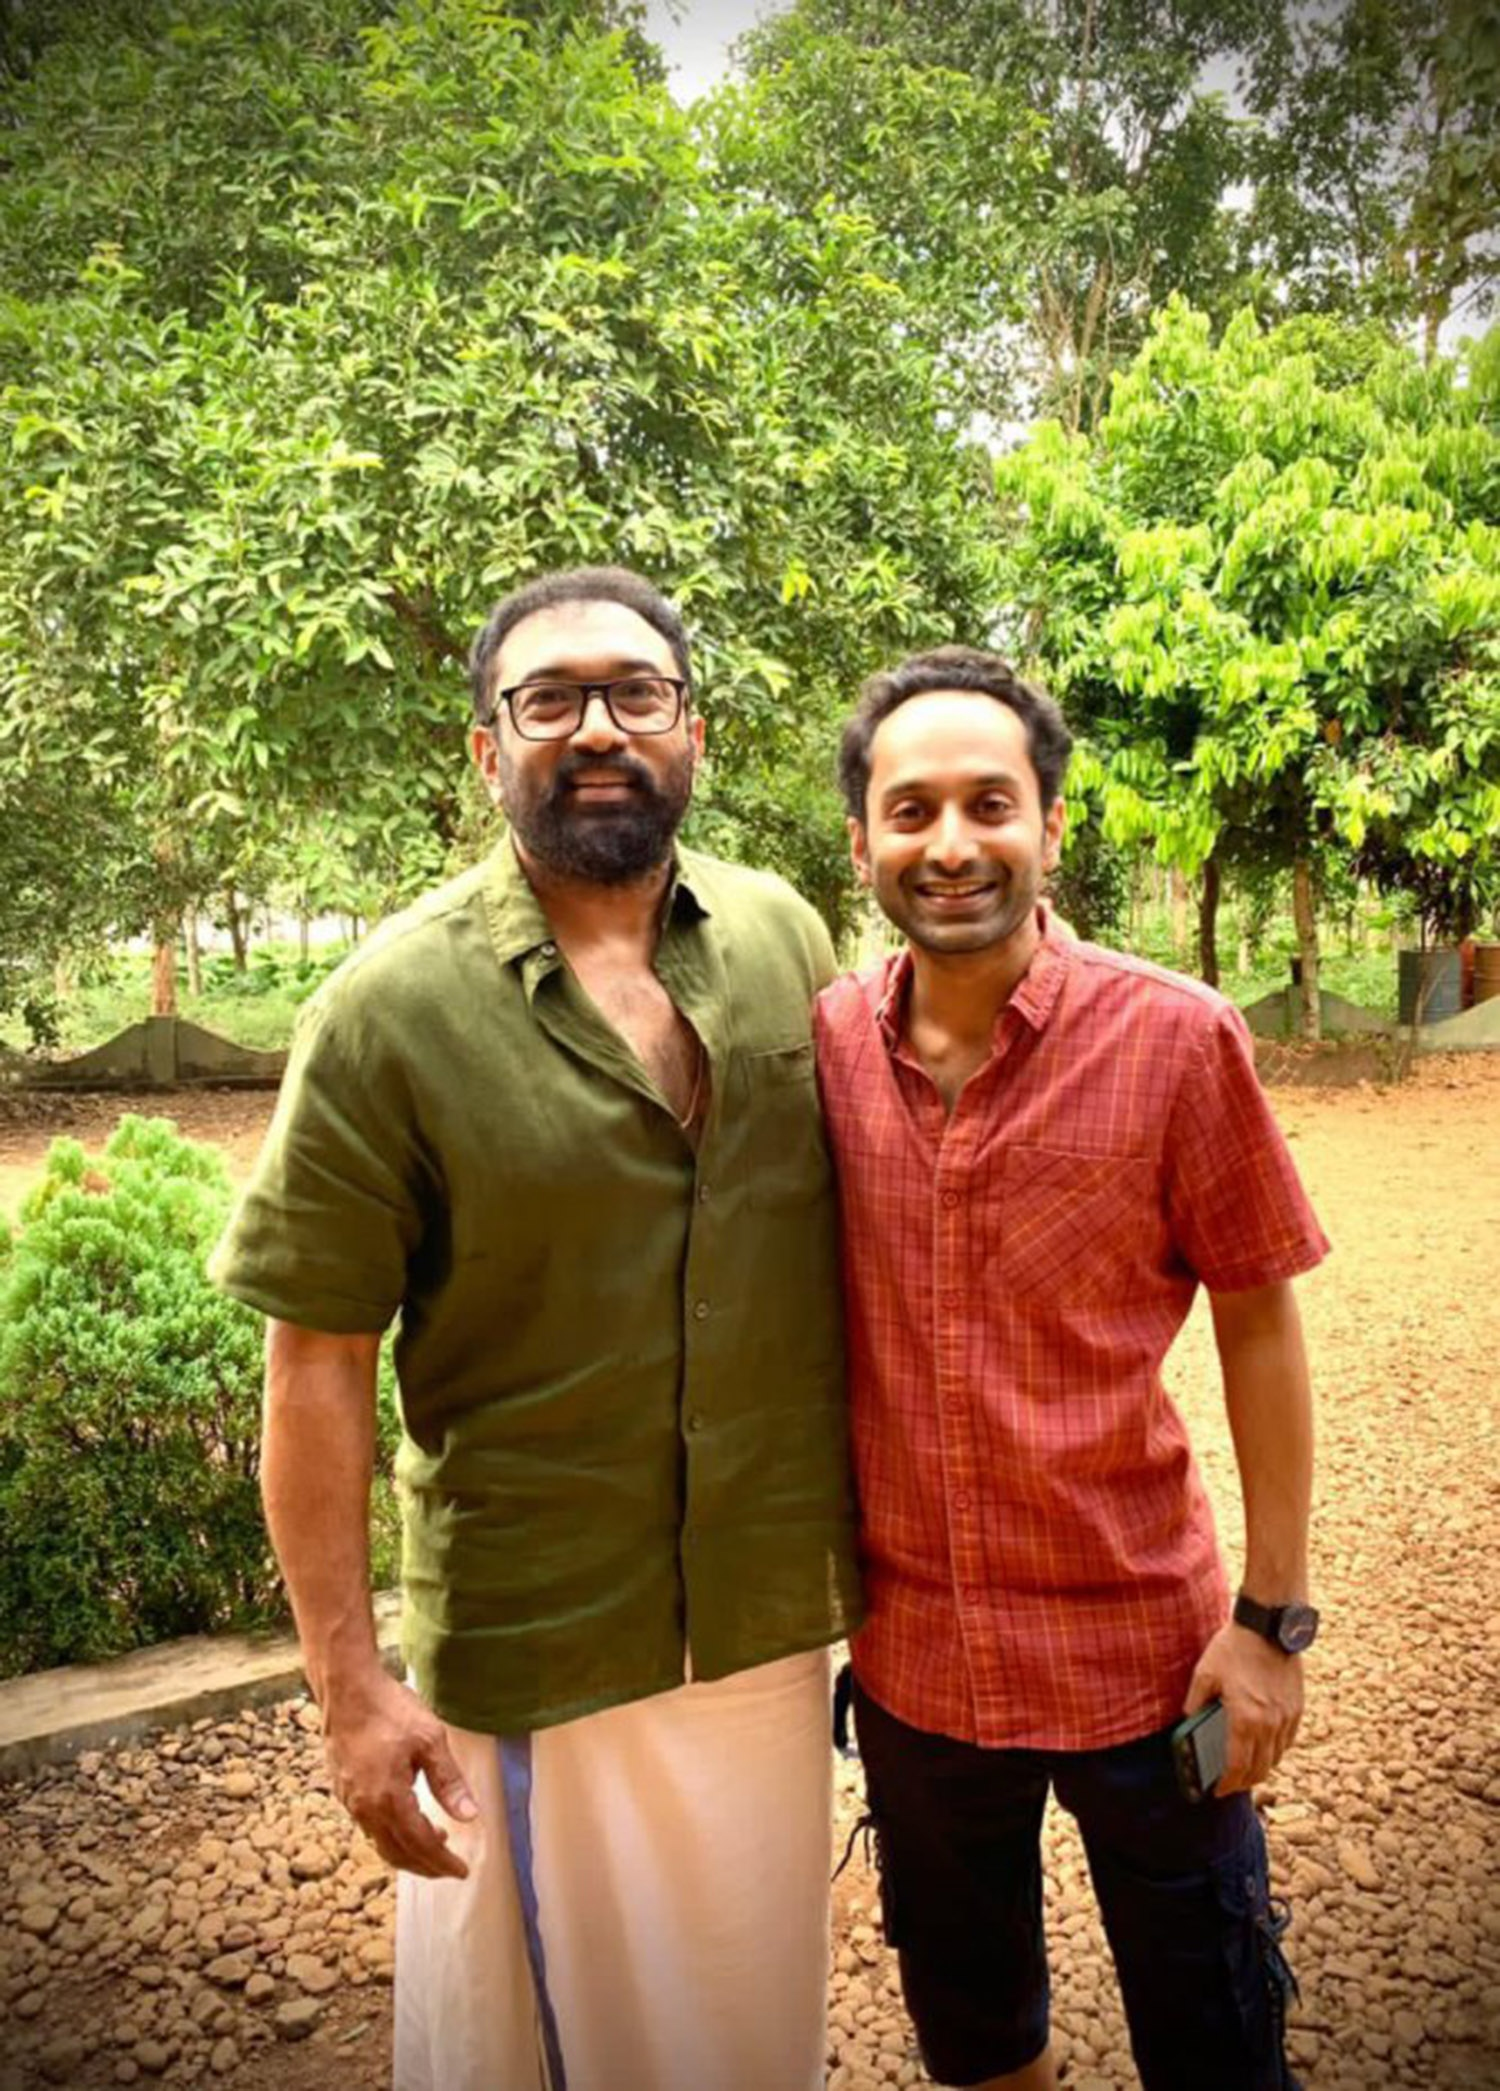 fahadh faasil joji movie